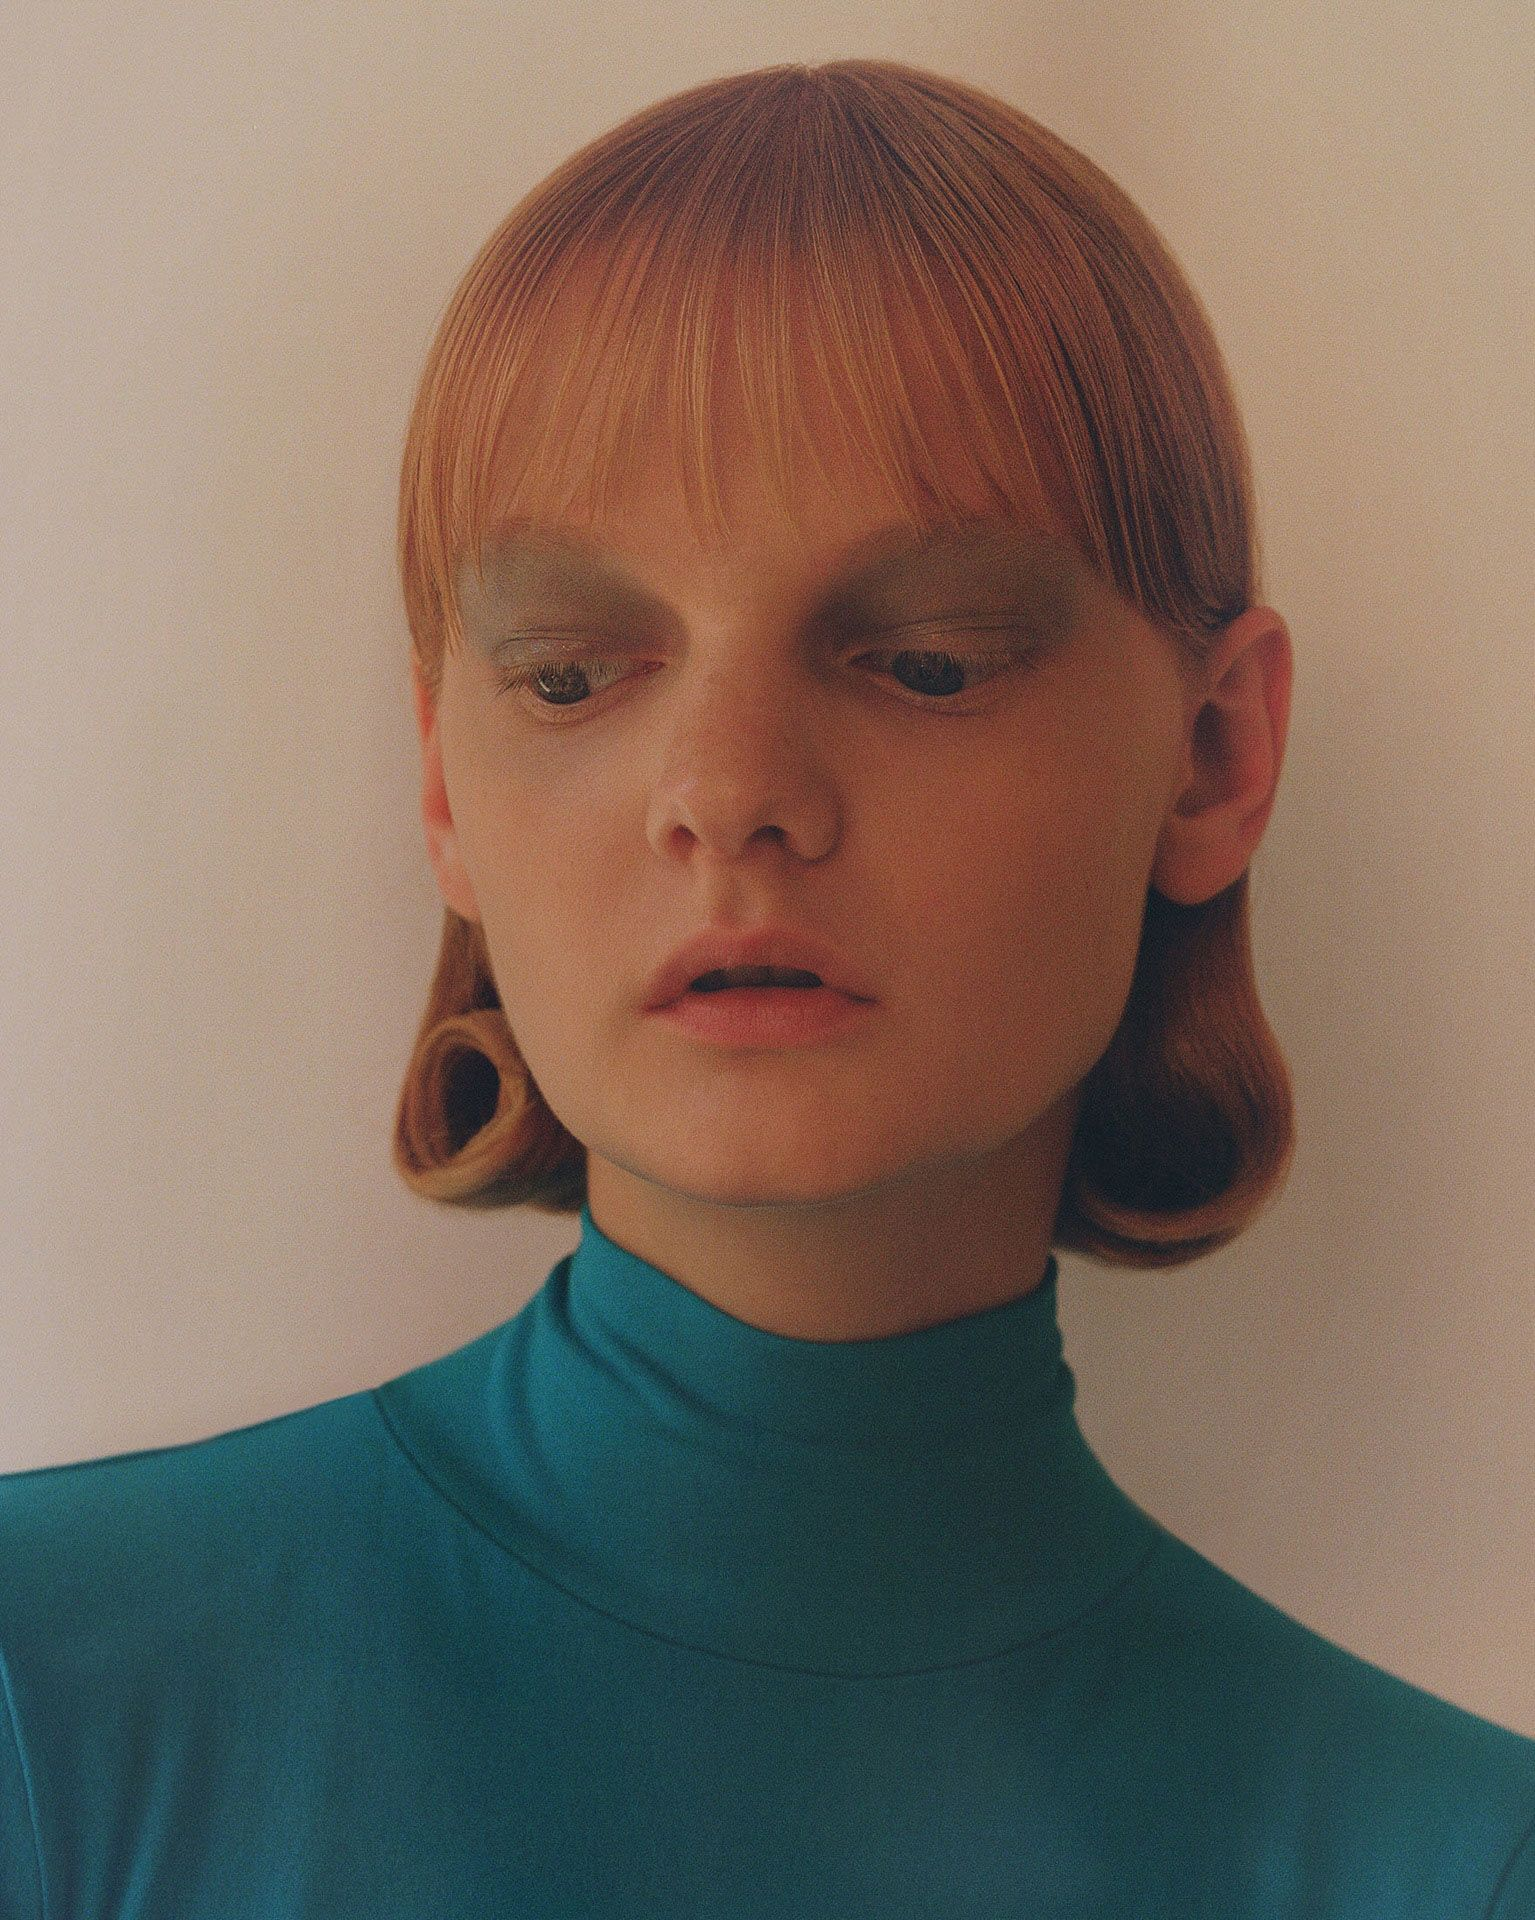 redhead female model wearing turquoise makeup and turquoise turtleneck looking down photographed by Oumayma B Tanfous for Moncler as a story for Document Journal magazine